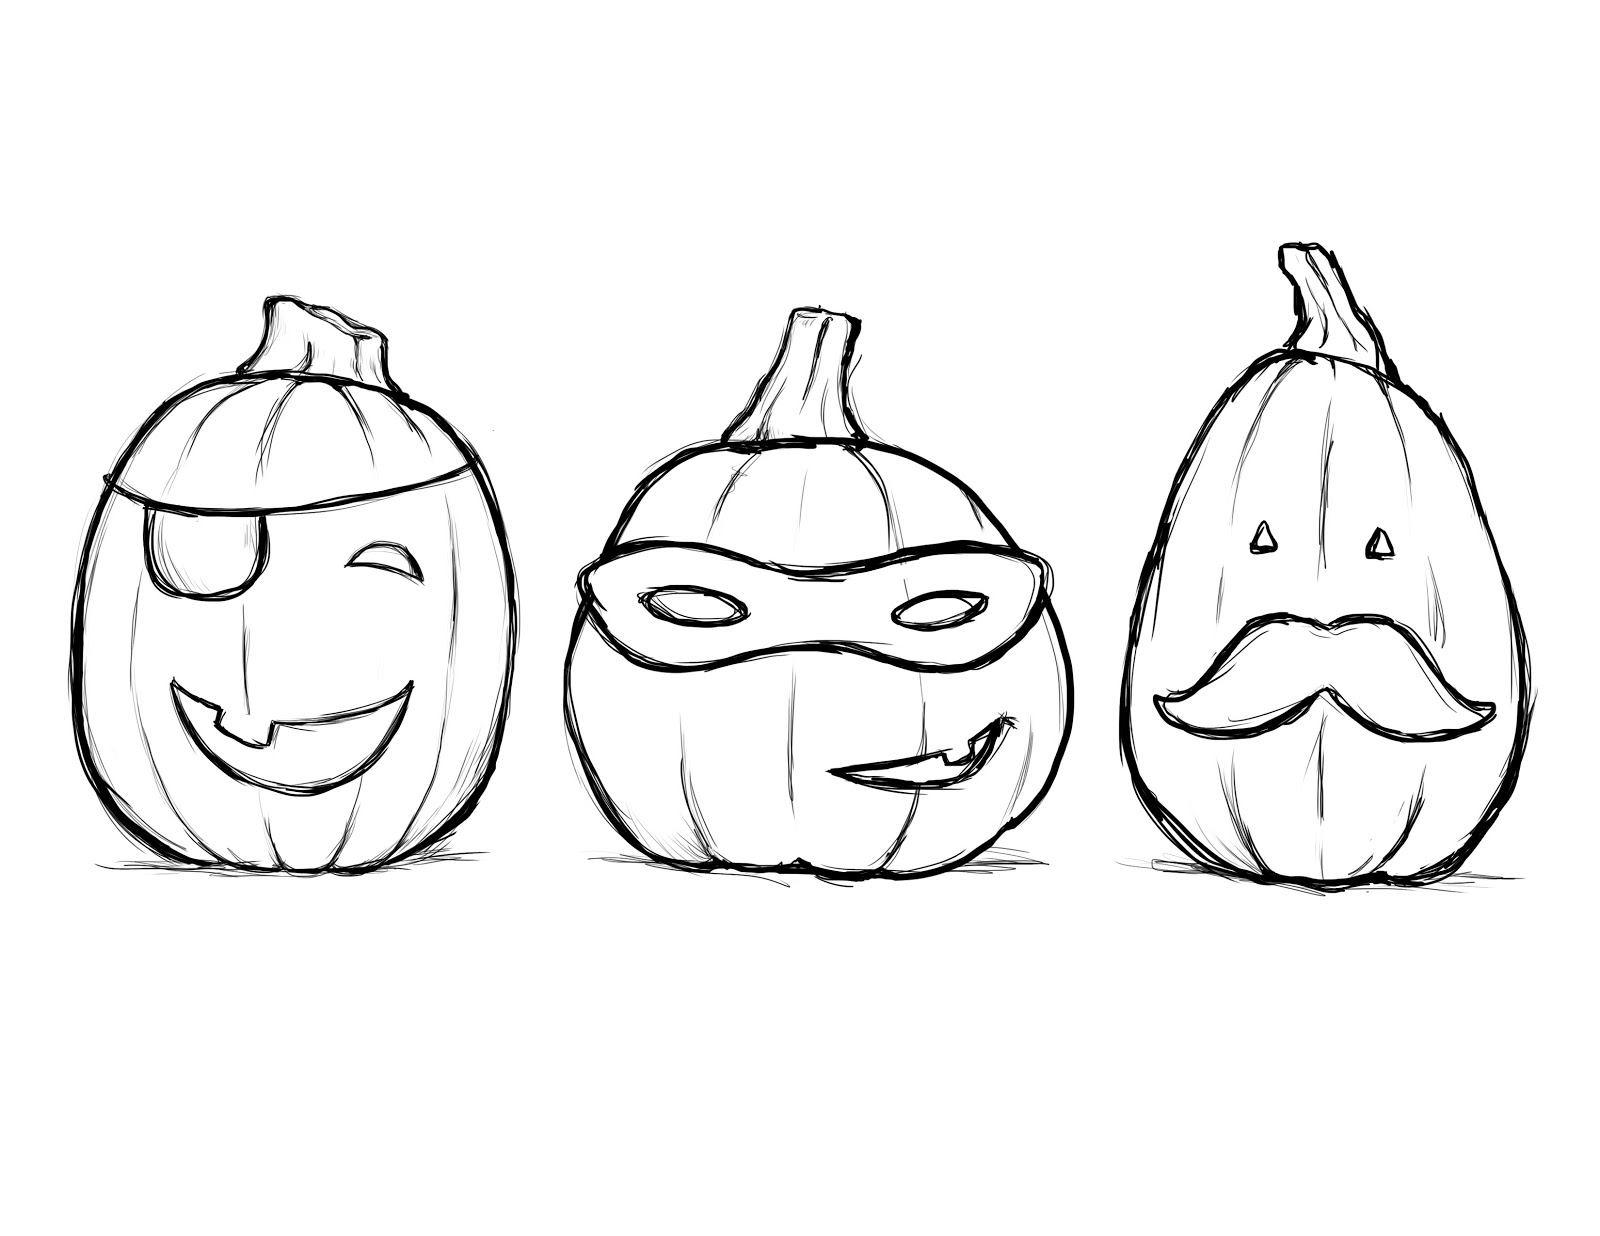 pumpkin colouring sheets get this pumpkin coloring pages for adults free yvbf1 colouring pumpkin sheets